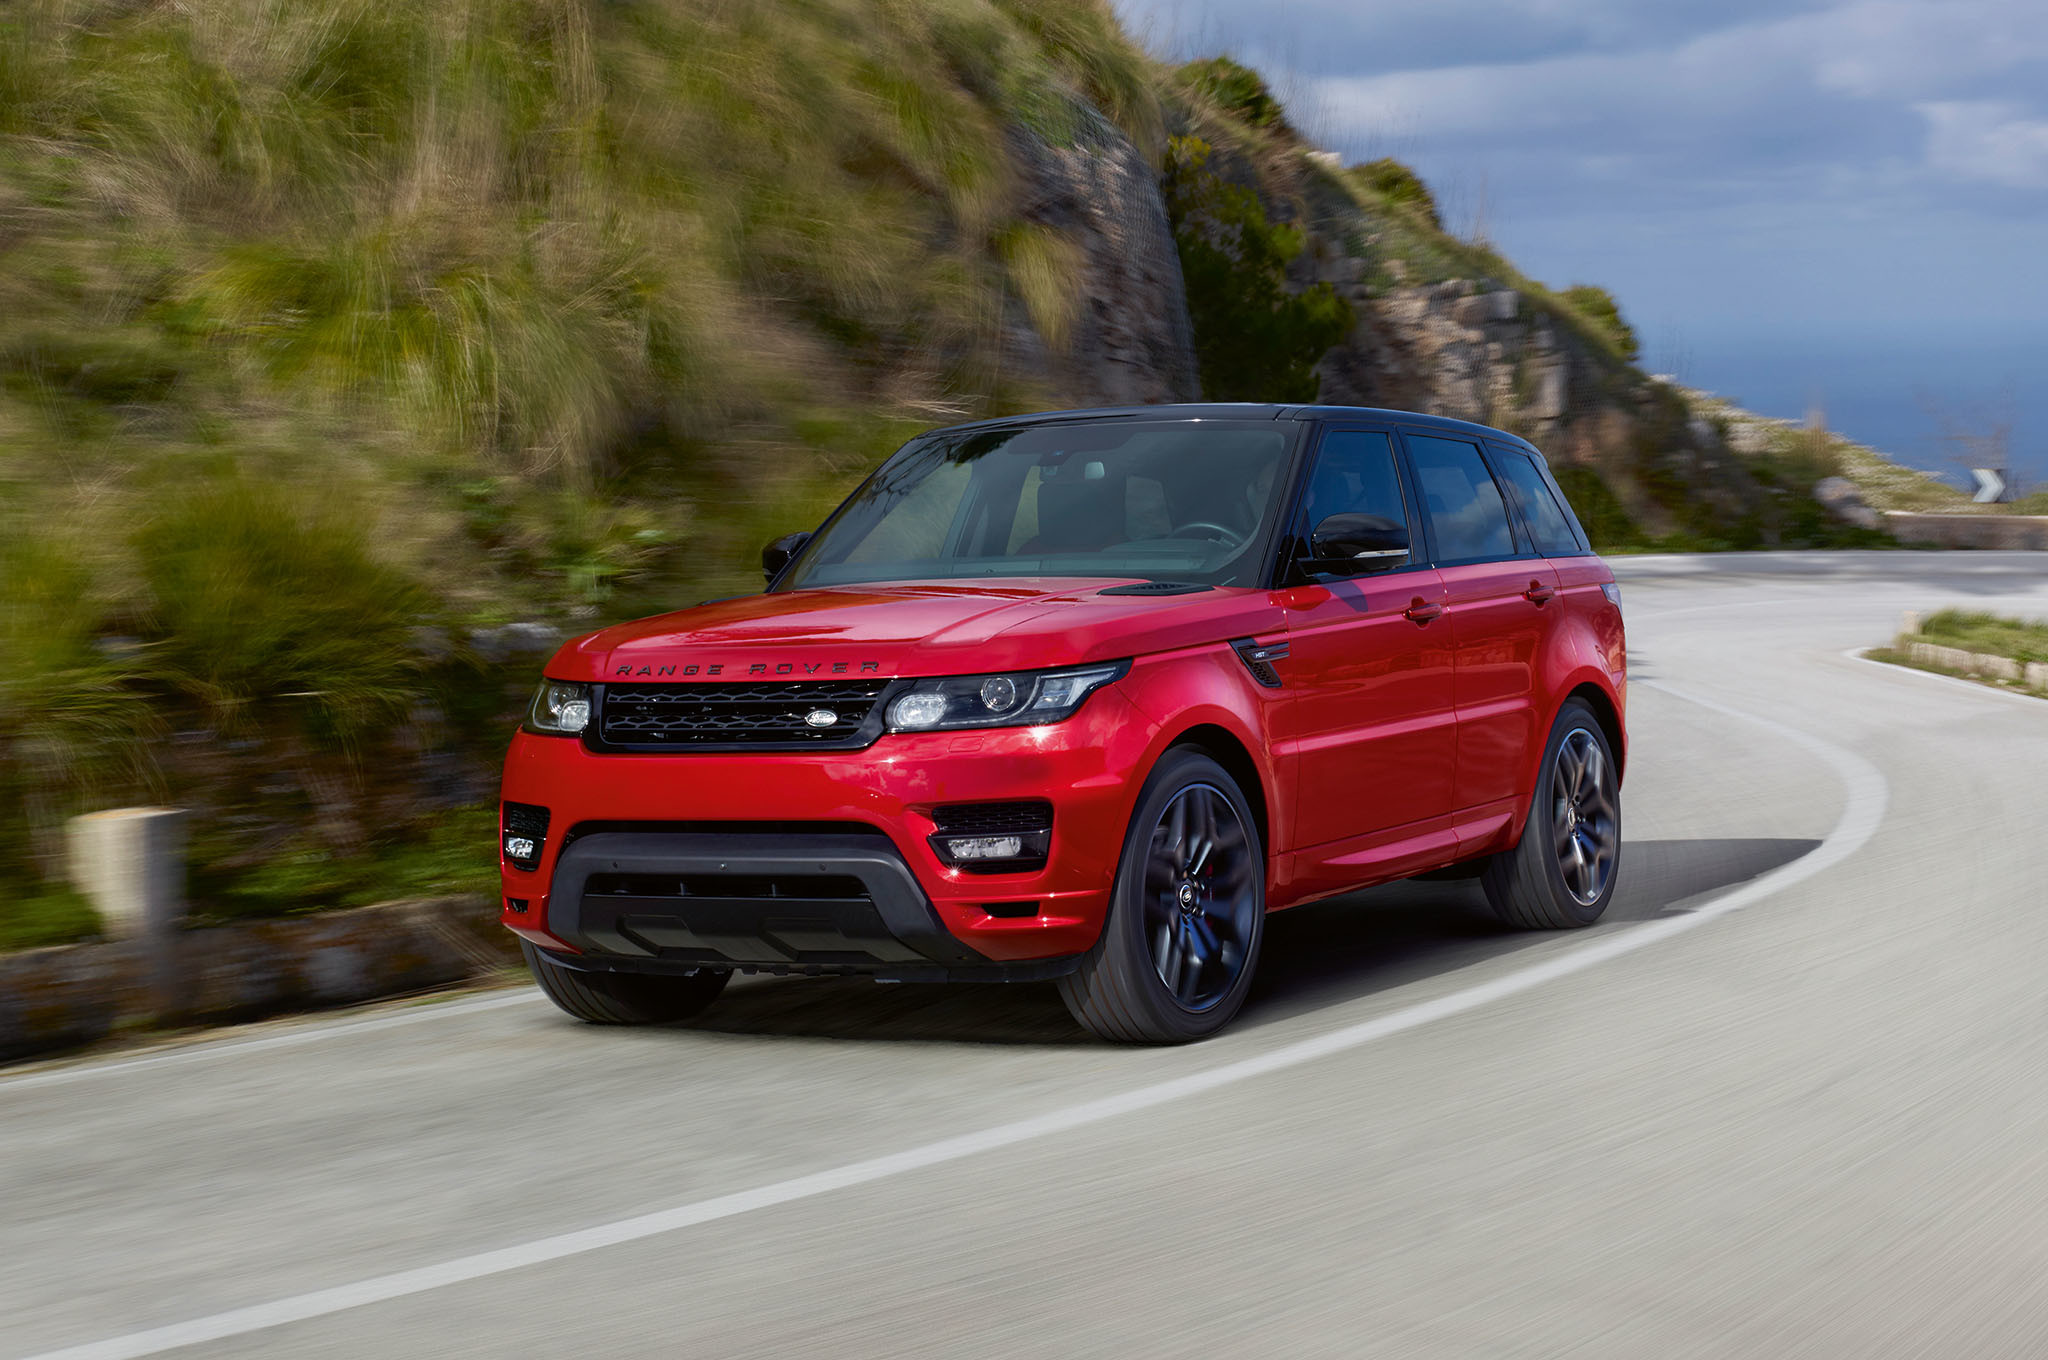 Range Rover Sport Iphone Wallpaper